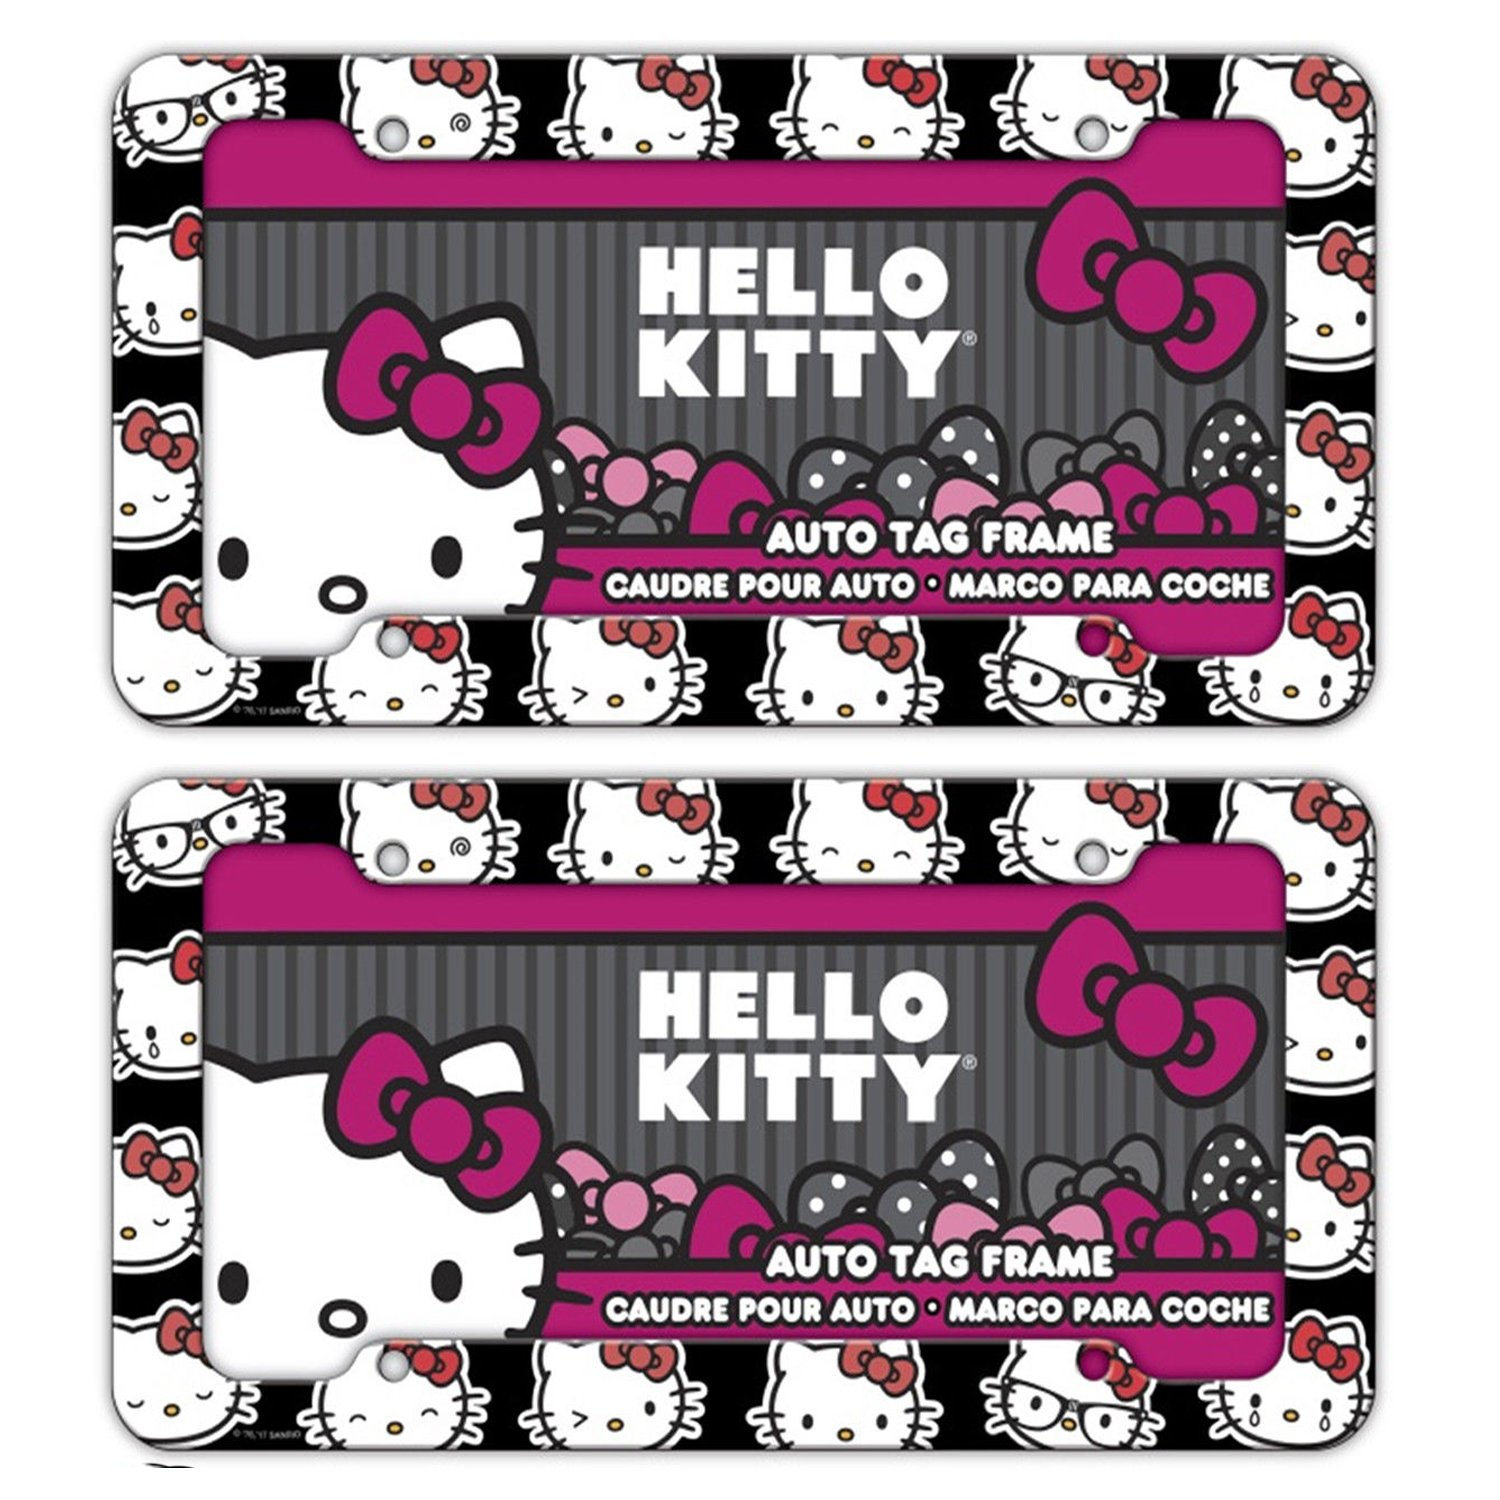 Chroma Graphics 42558 Black//White//Red 12.5x6.25x0.2 Hello Kitty Emoji Heads Plastic Frame